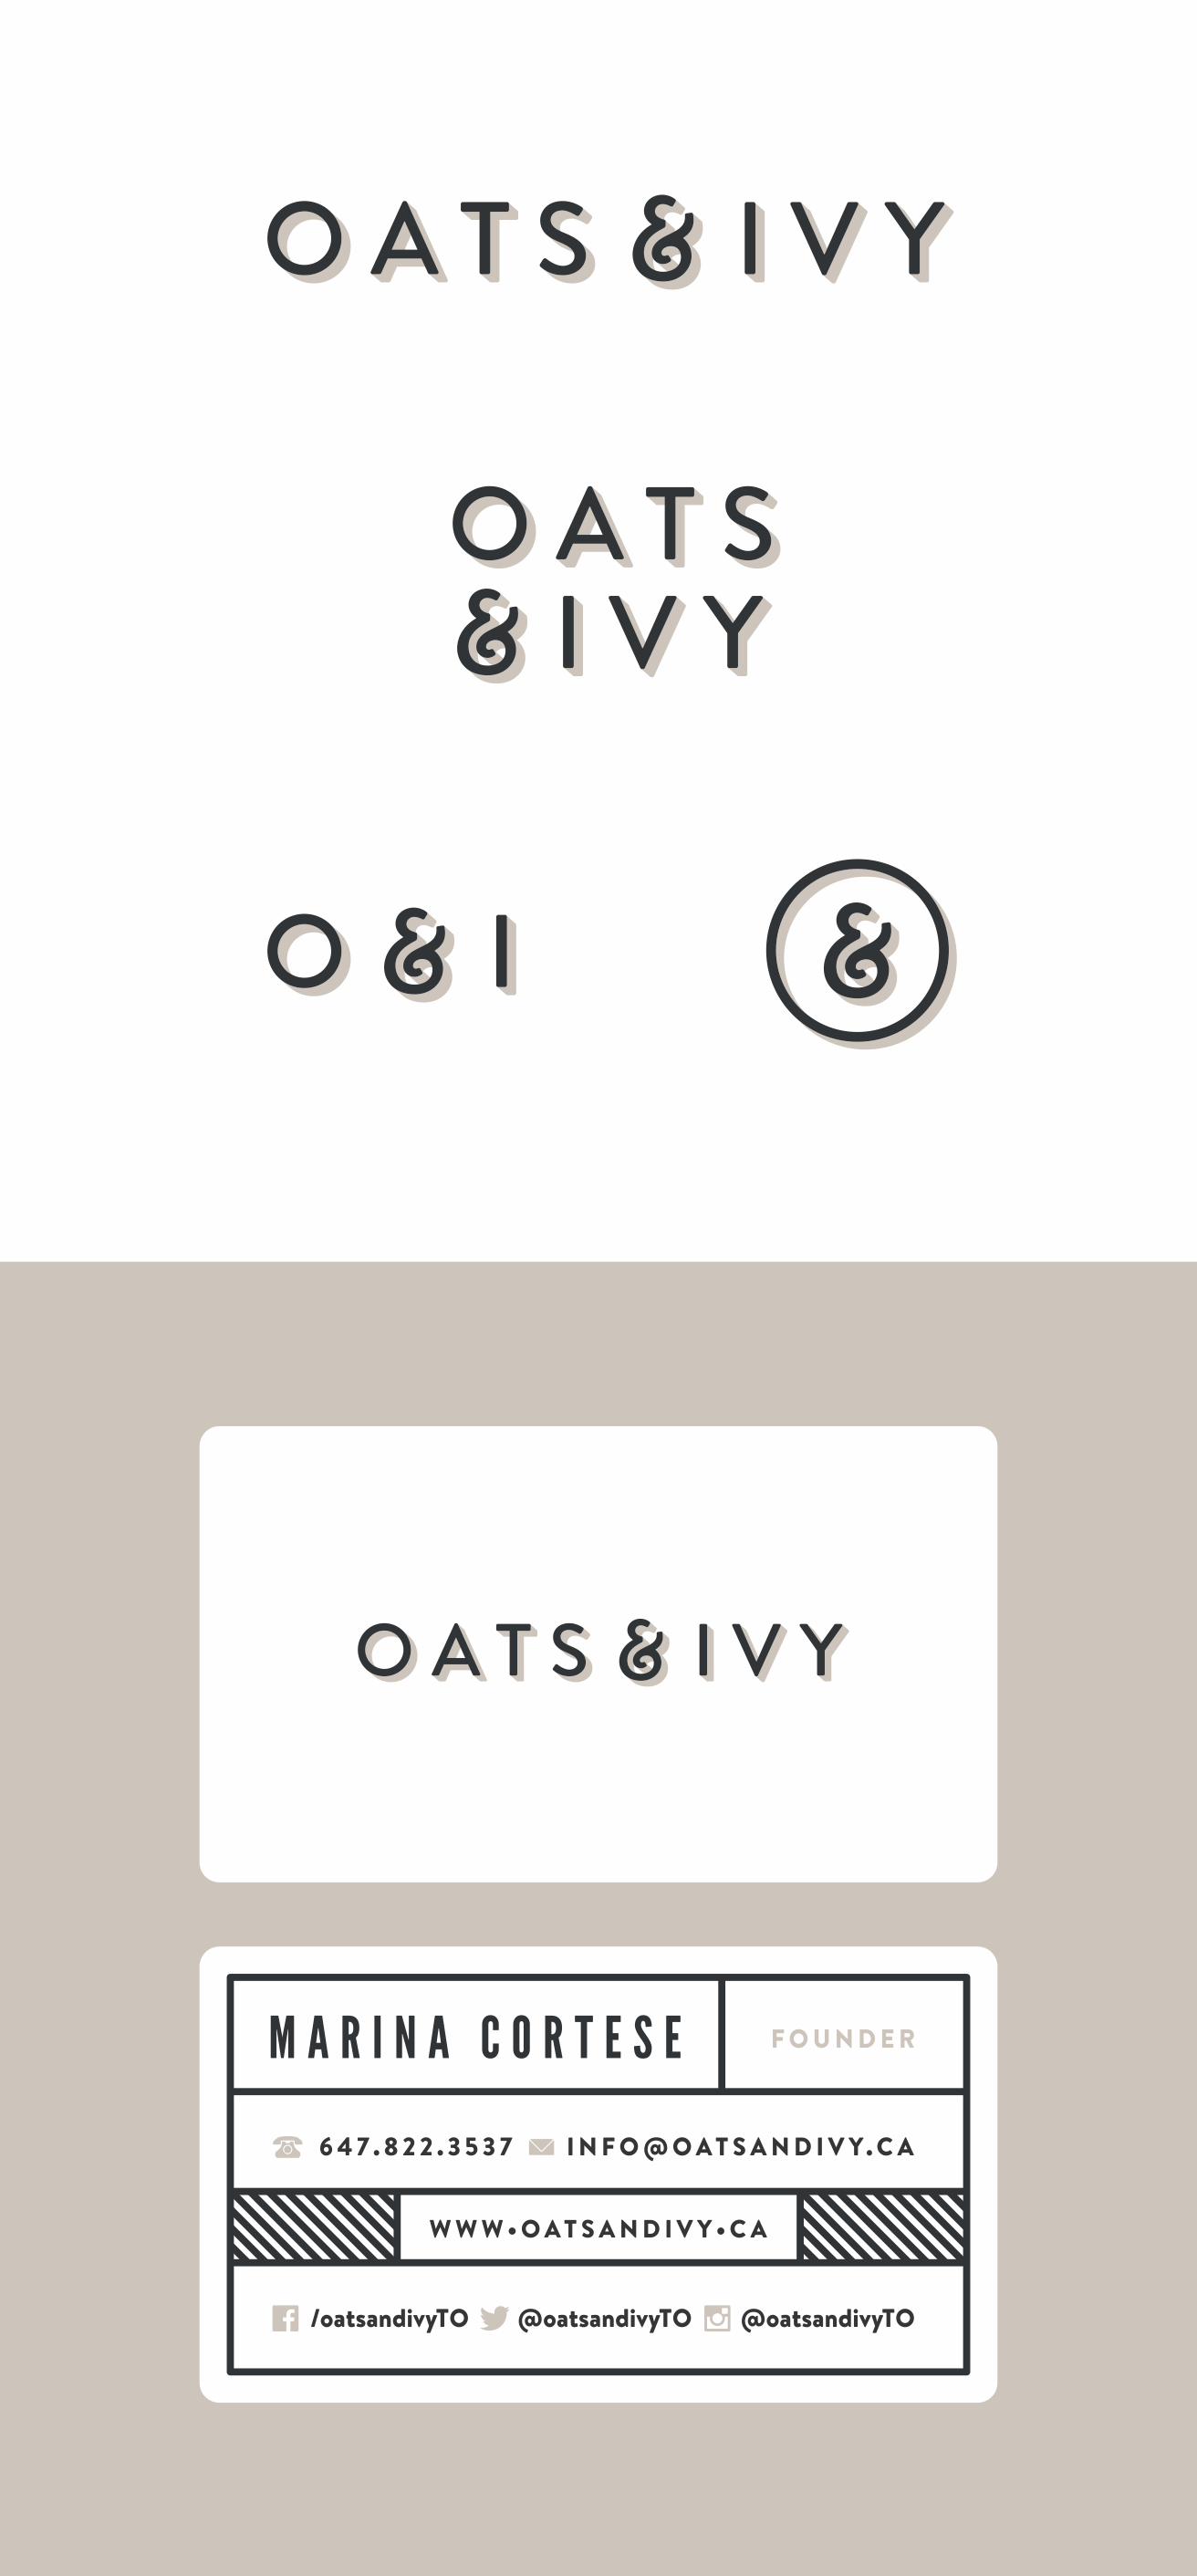 Oats & Ivy: fun, healthy, fast food brand needs a logo!